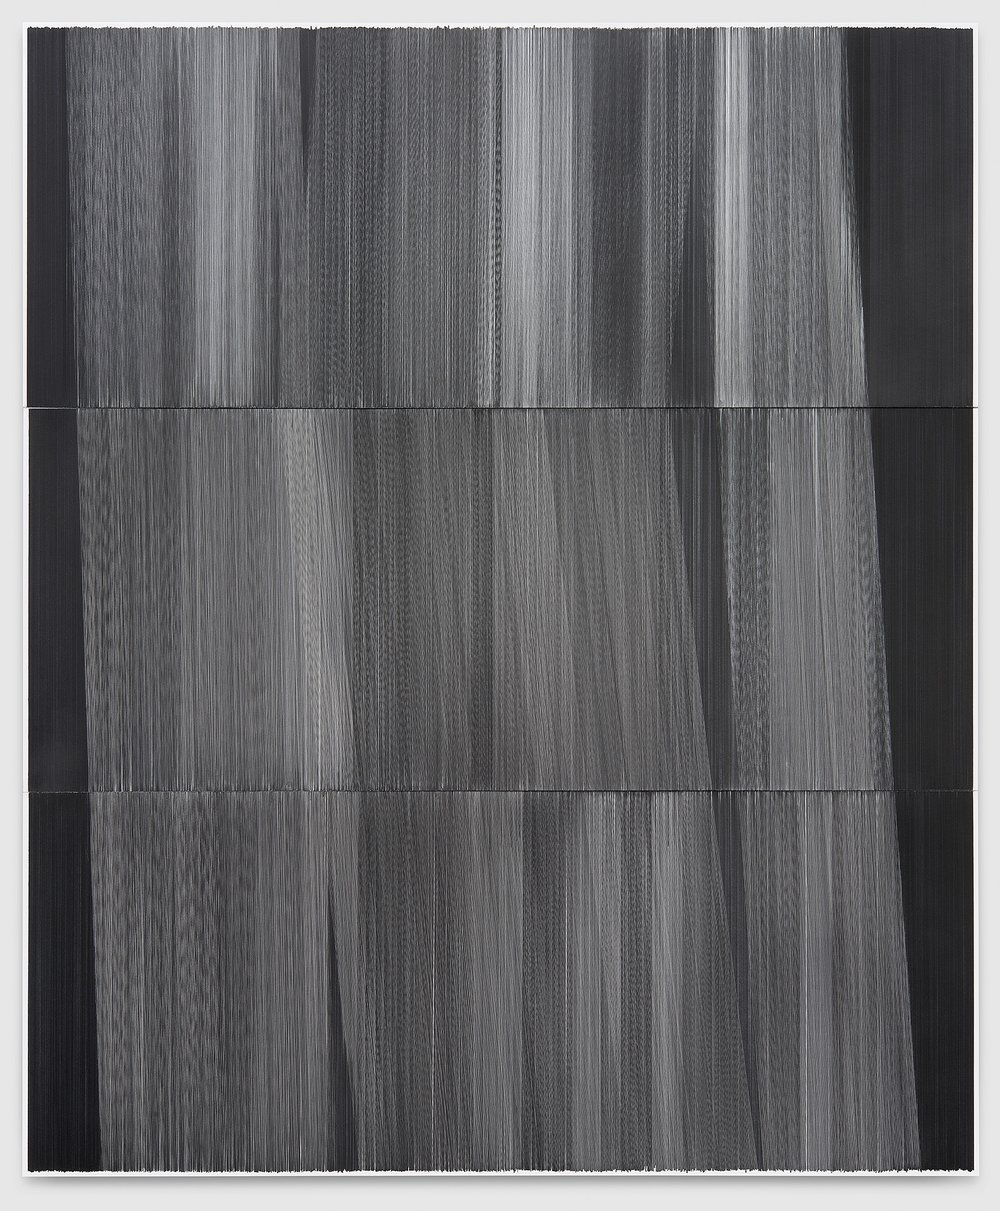 field drawing 02   2015   graphite on mat board   55 by 66 inches